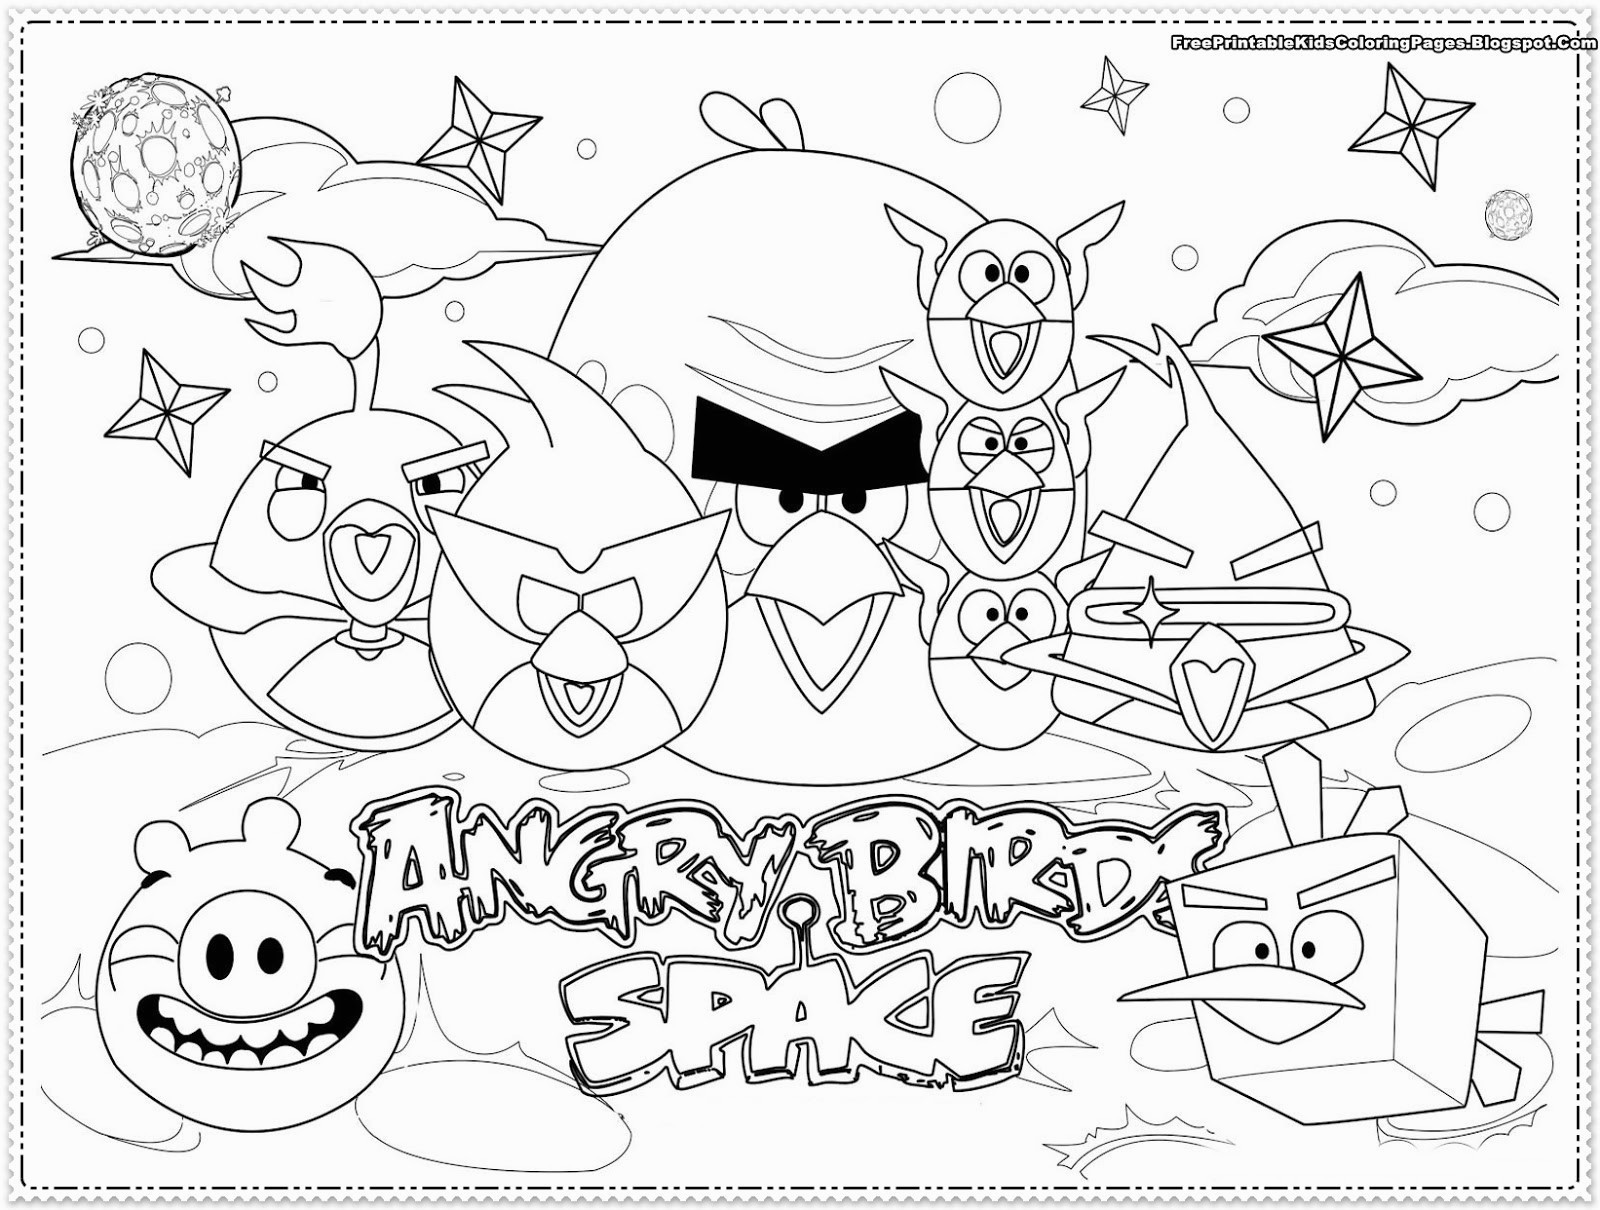 Ausmalbilder Angry Birds Genial Coloring Pages Archives Katesgrove Einzigartig Ausmalbilder Angry Galerie